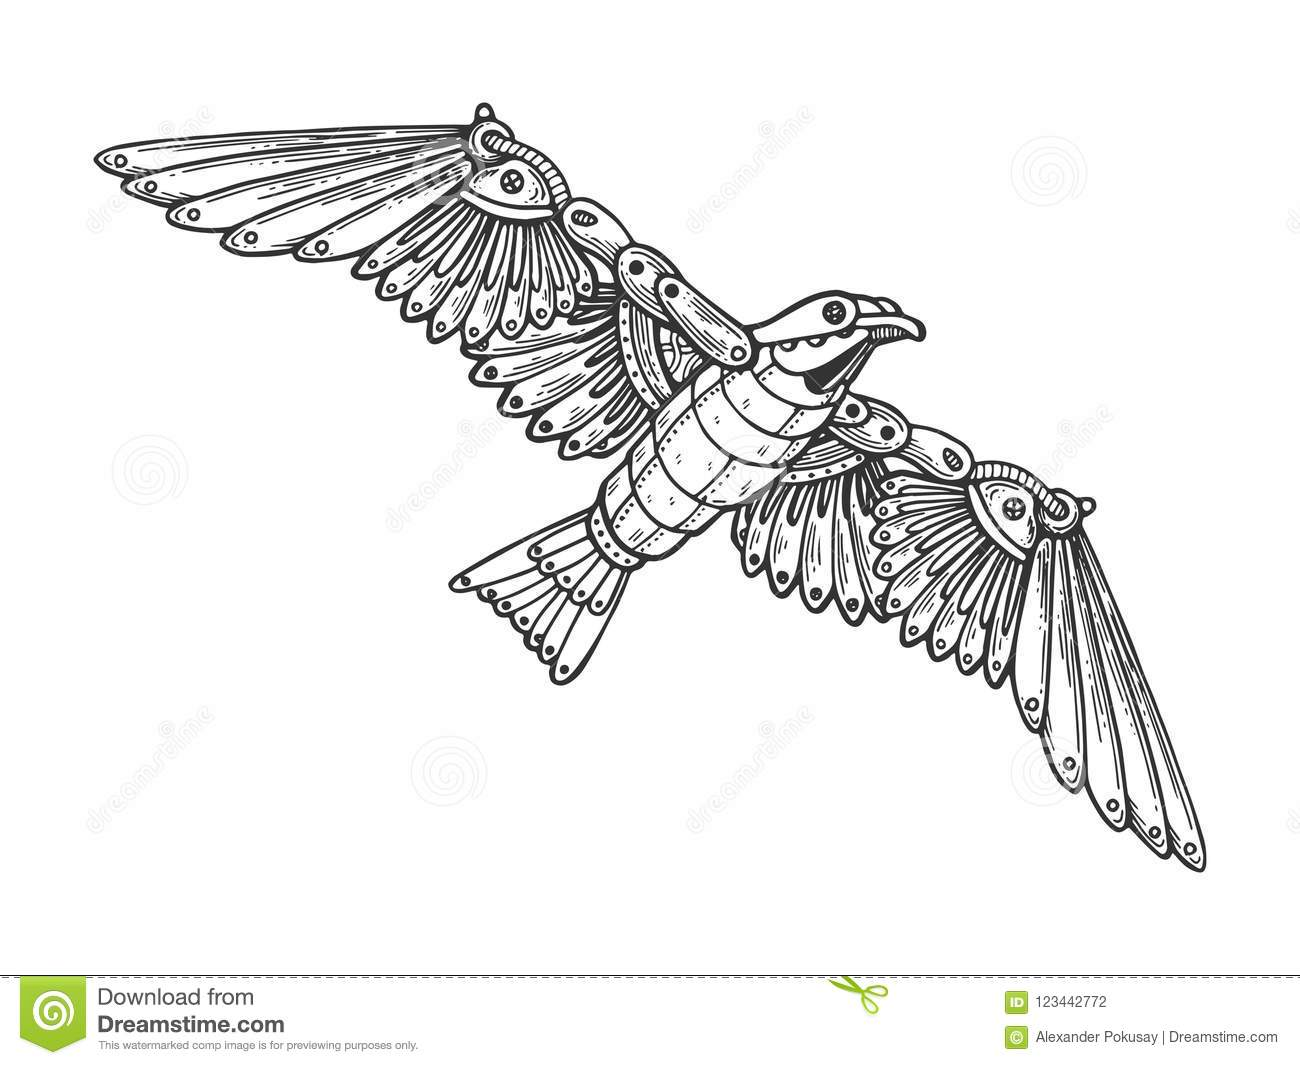 Mechanical seagull bird animal engraving vector